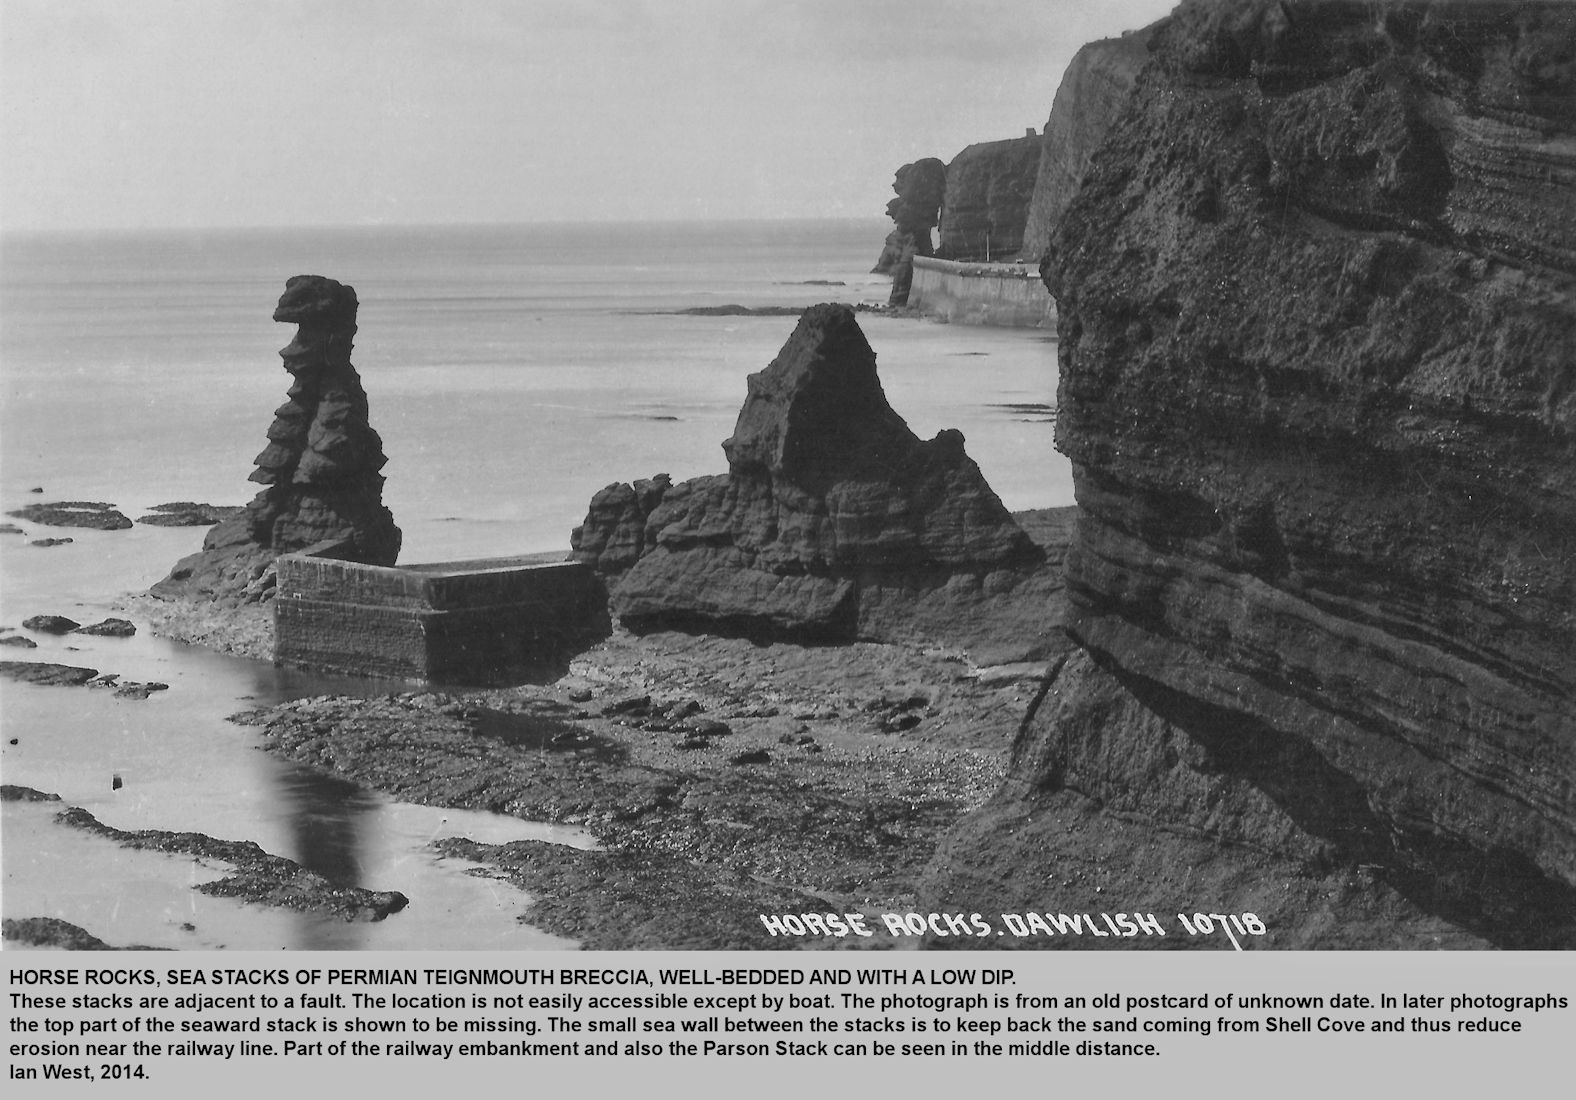 Horse Rocks shown in an old photograph, perhaps, pre 1920s, south of Dawlish, Devon